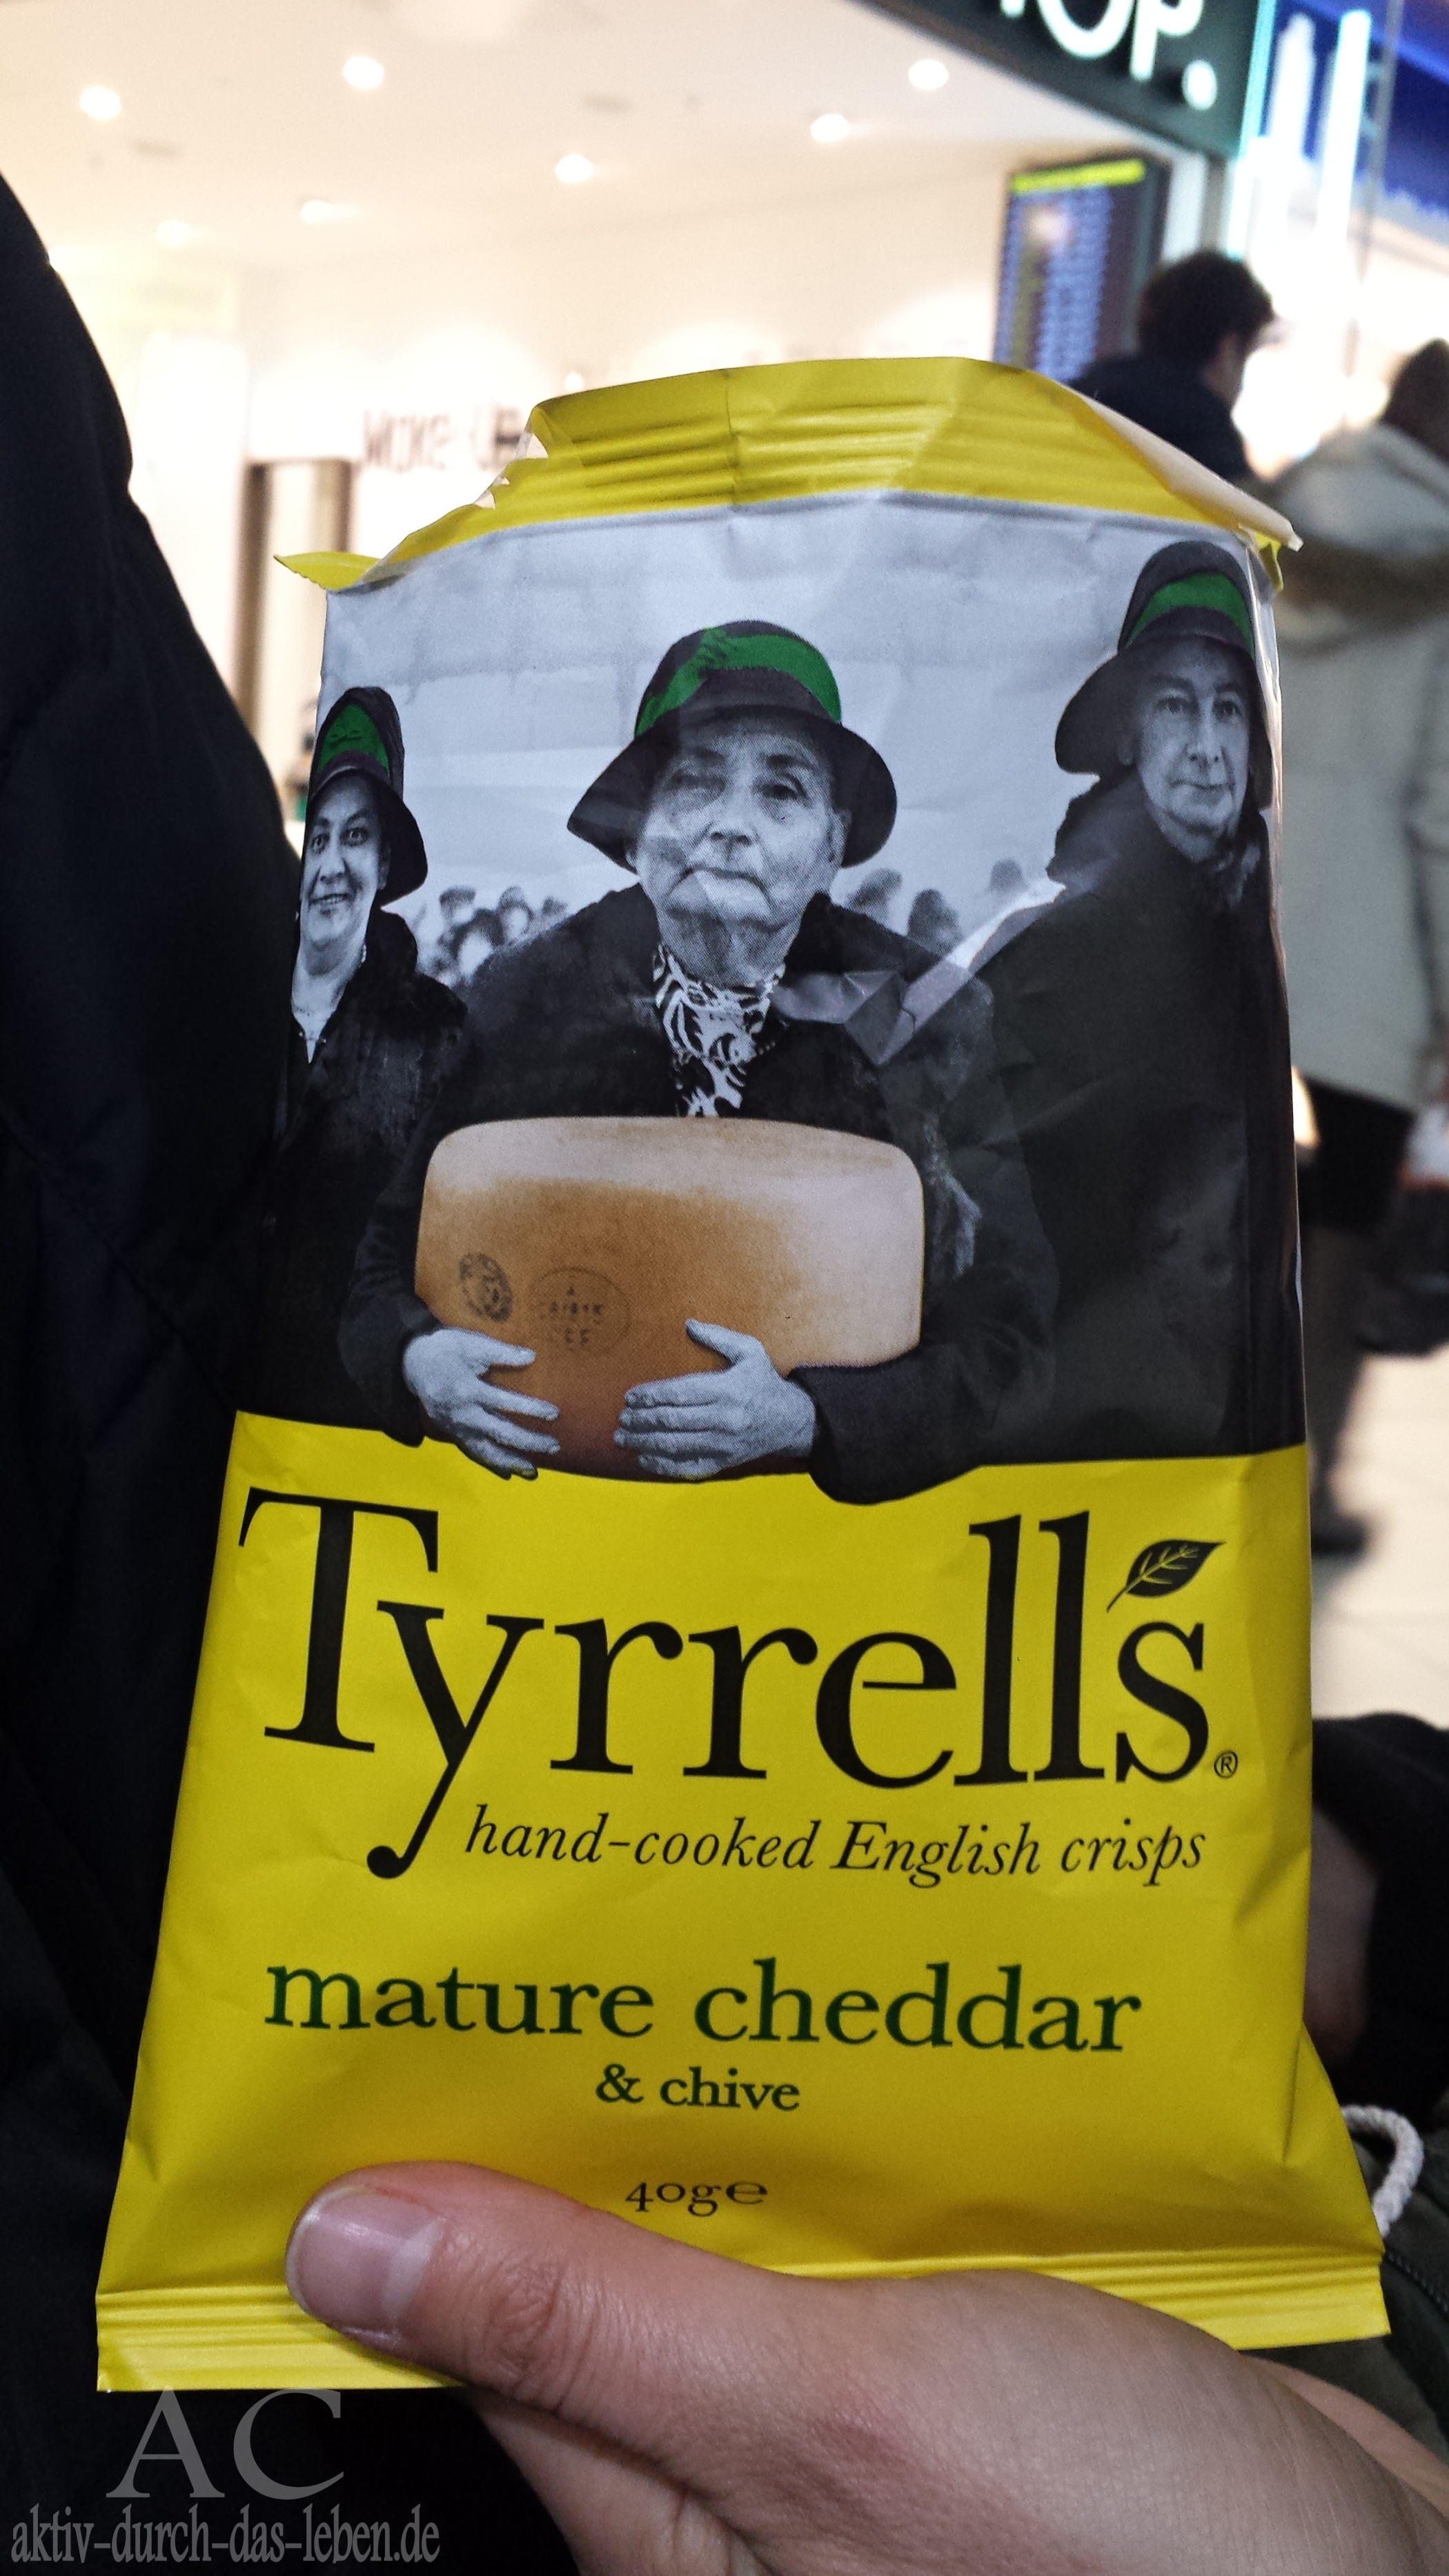 Tyrrell's English Srisps